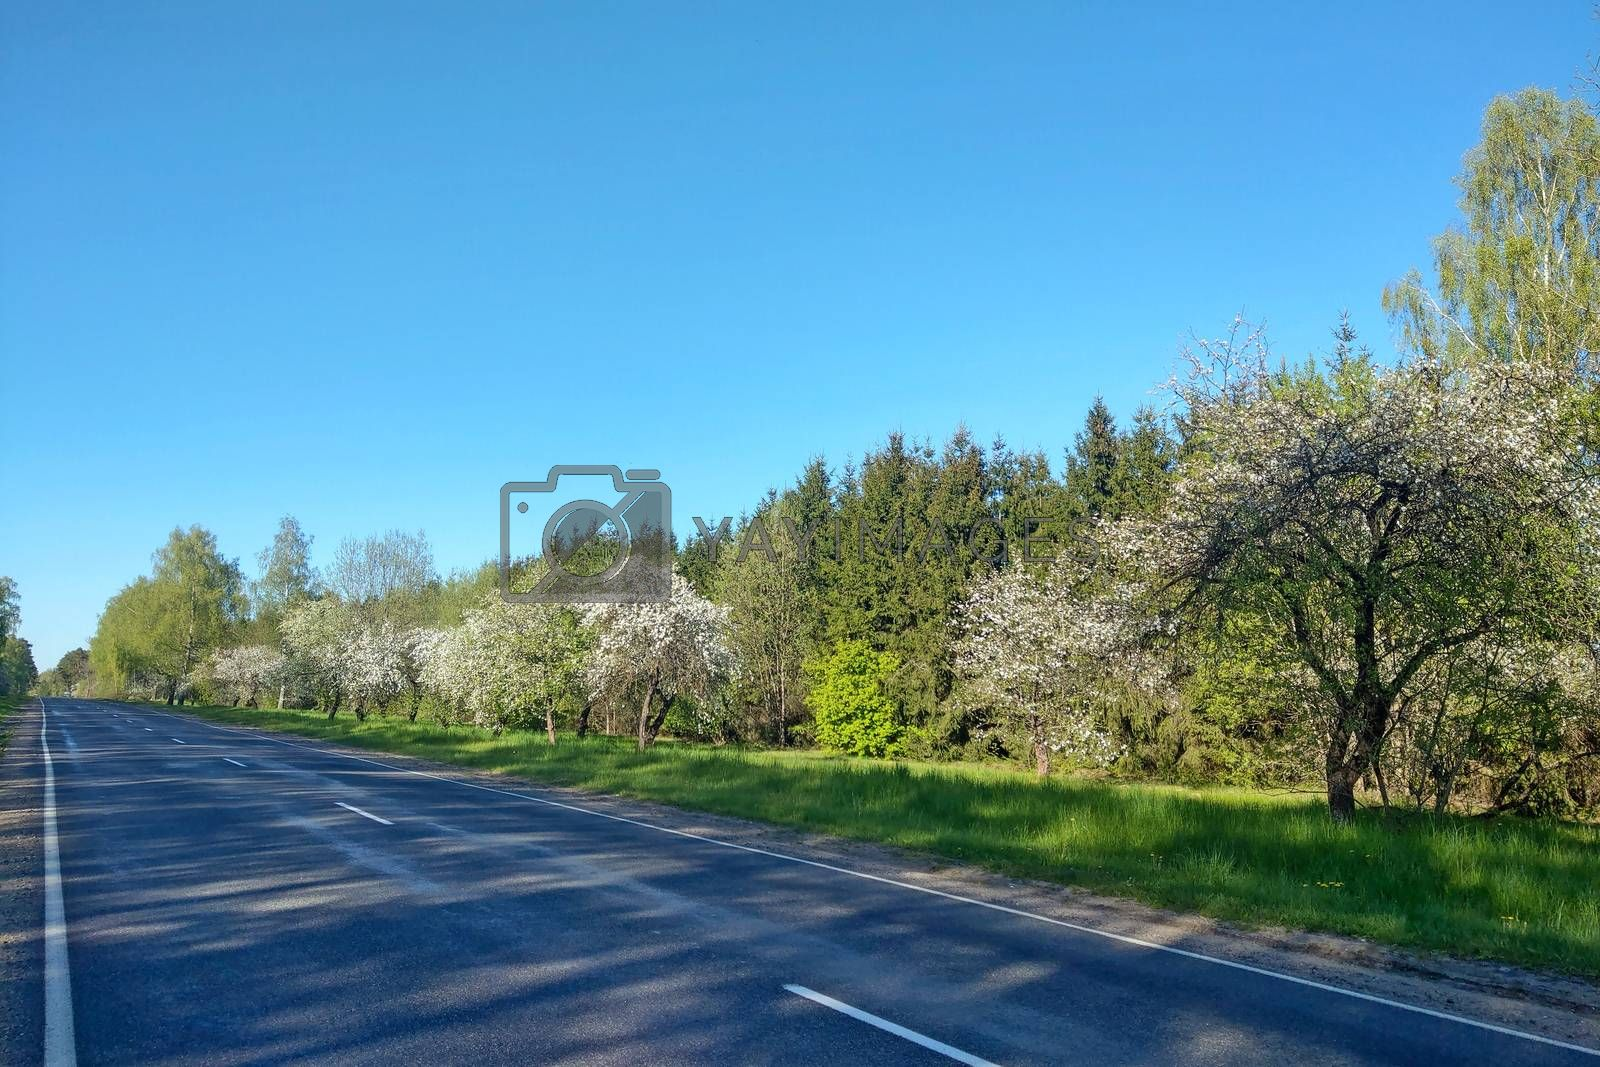 Nice view of a country road in spring on a clear day